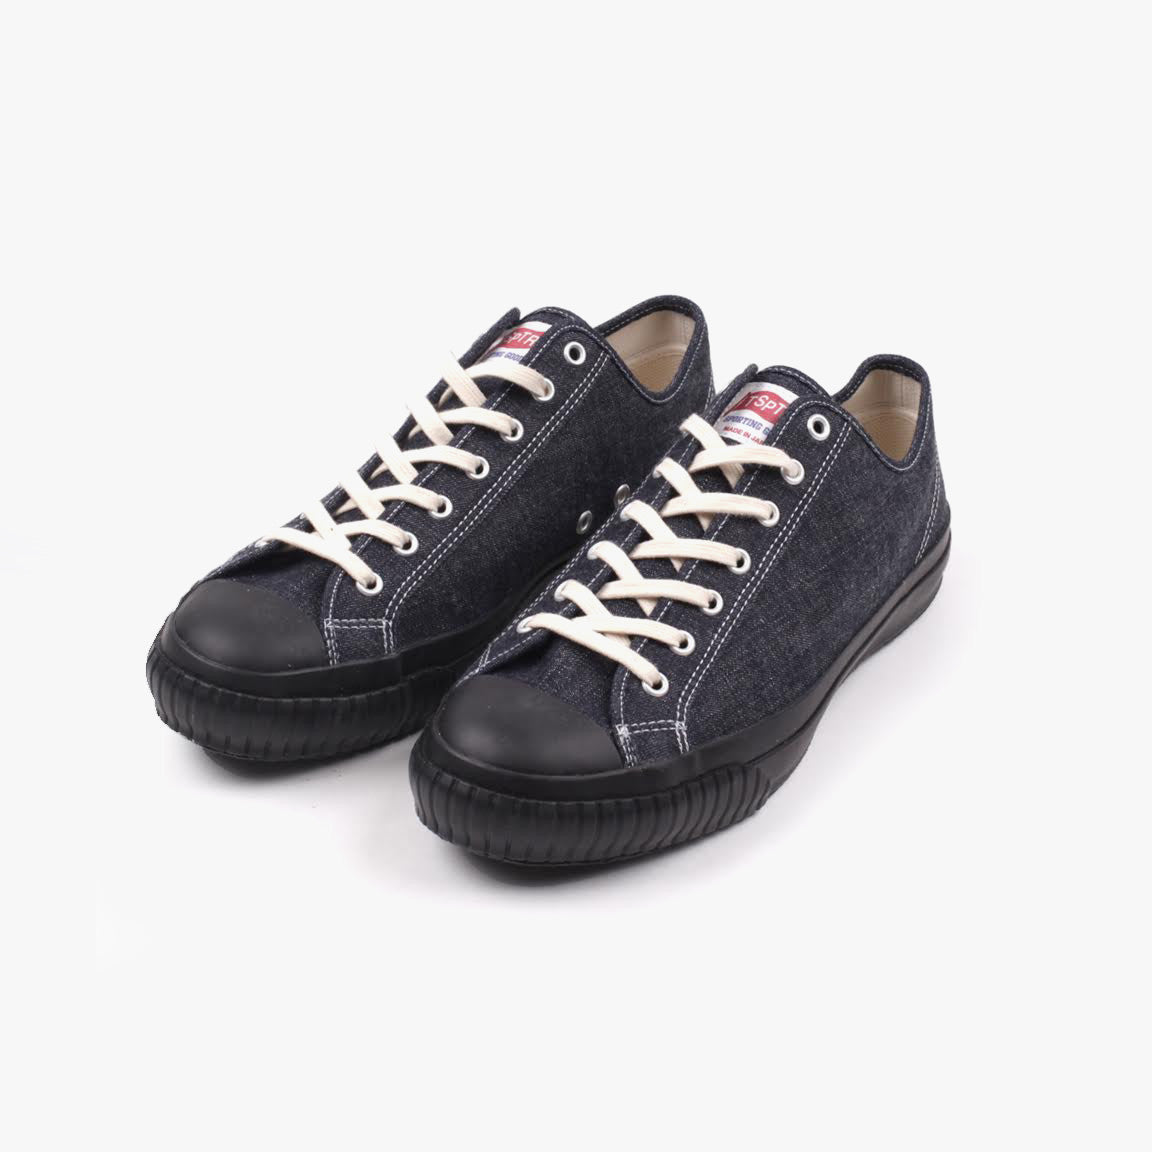 Cadet Sneakers - Indigo Denim